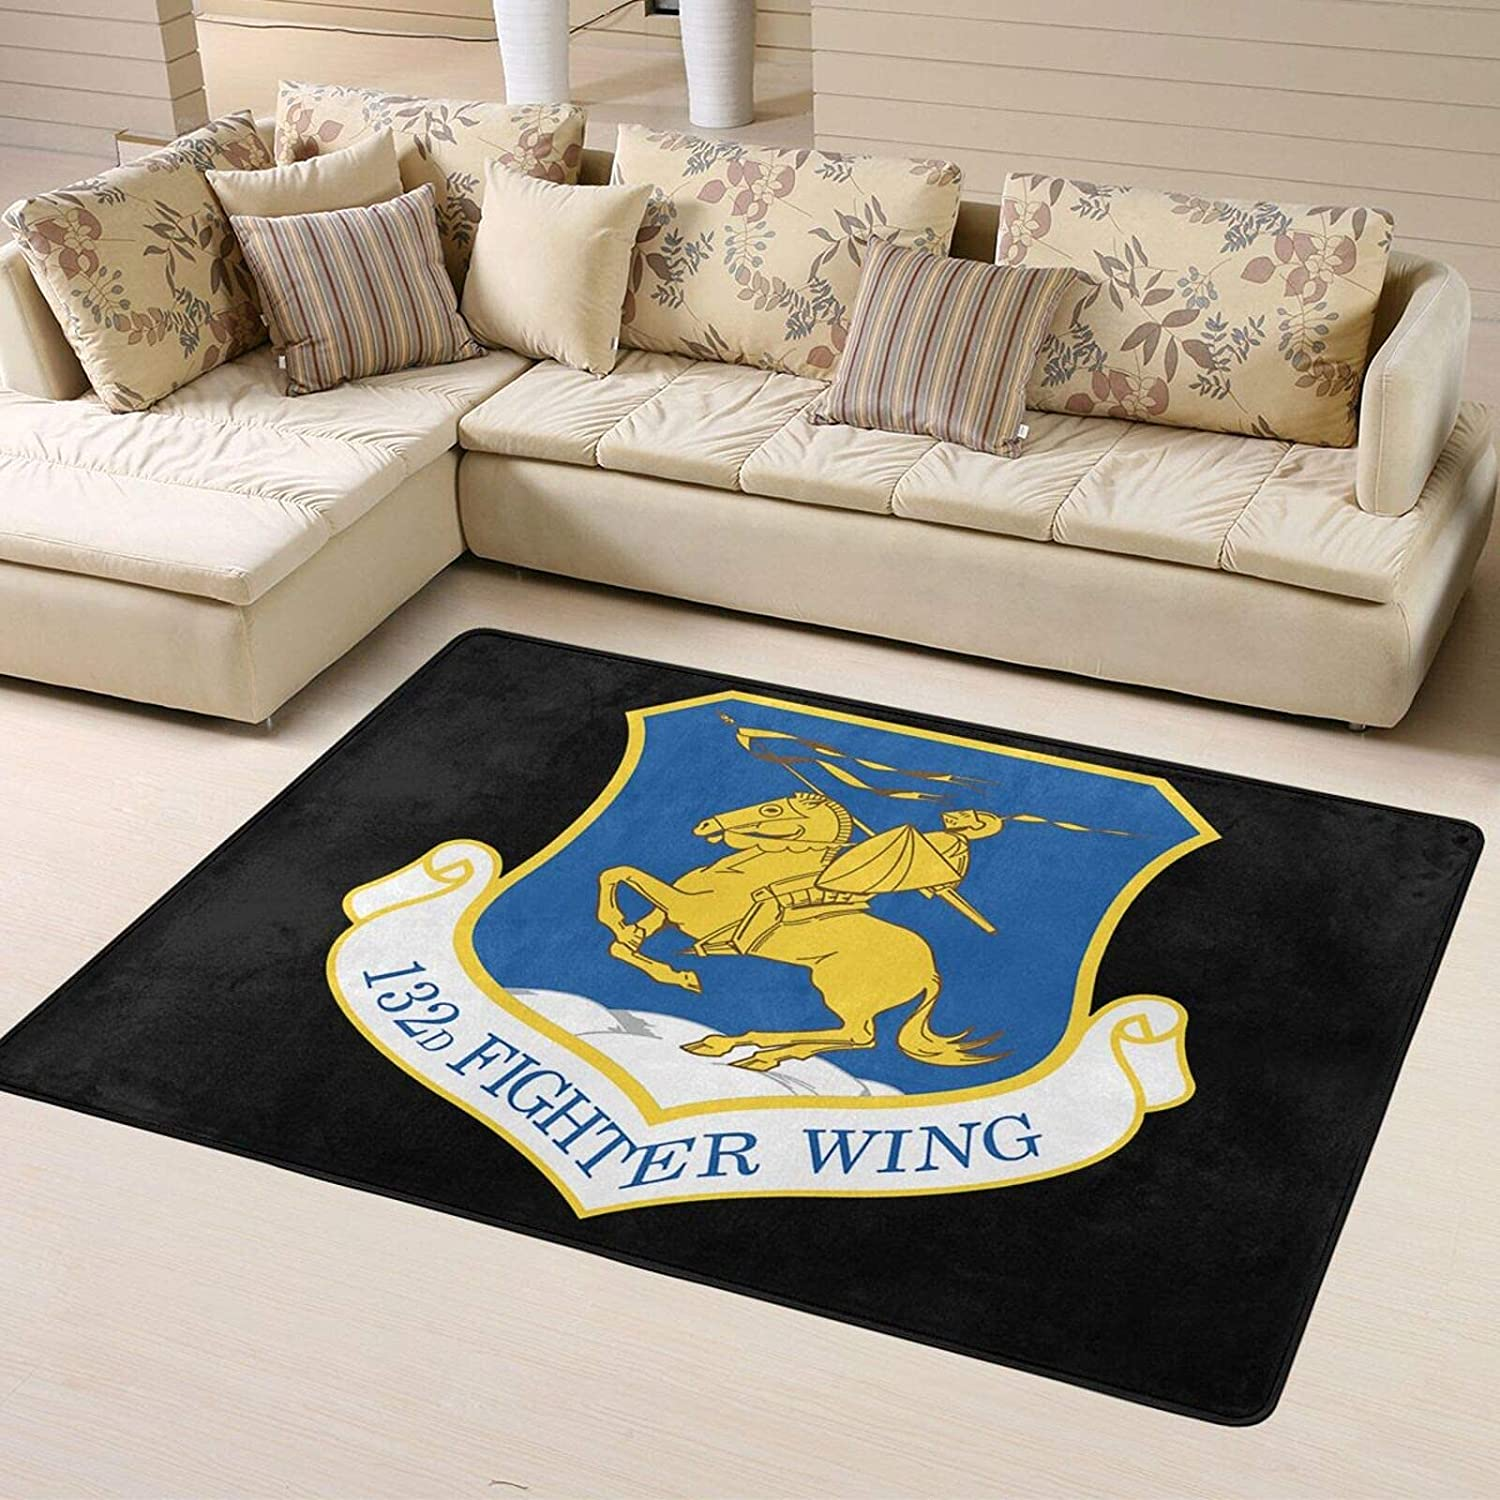 Omaha Mall U.S. Air Force 132nd Fighter Wing Soft R Super Home Max 58% OFF Personalized